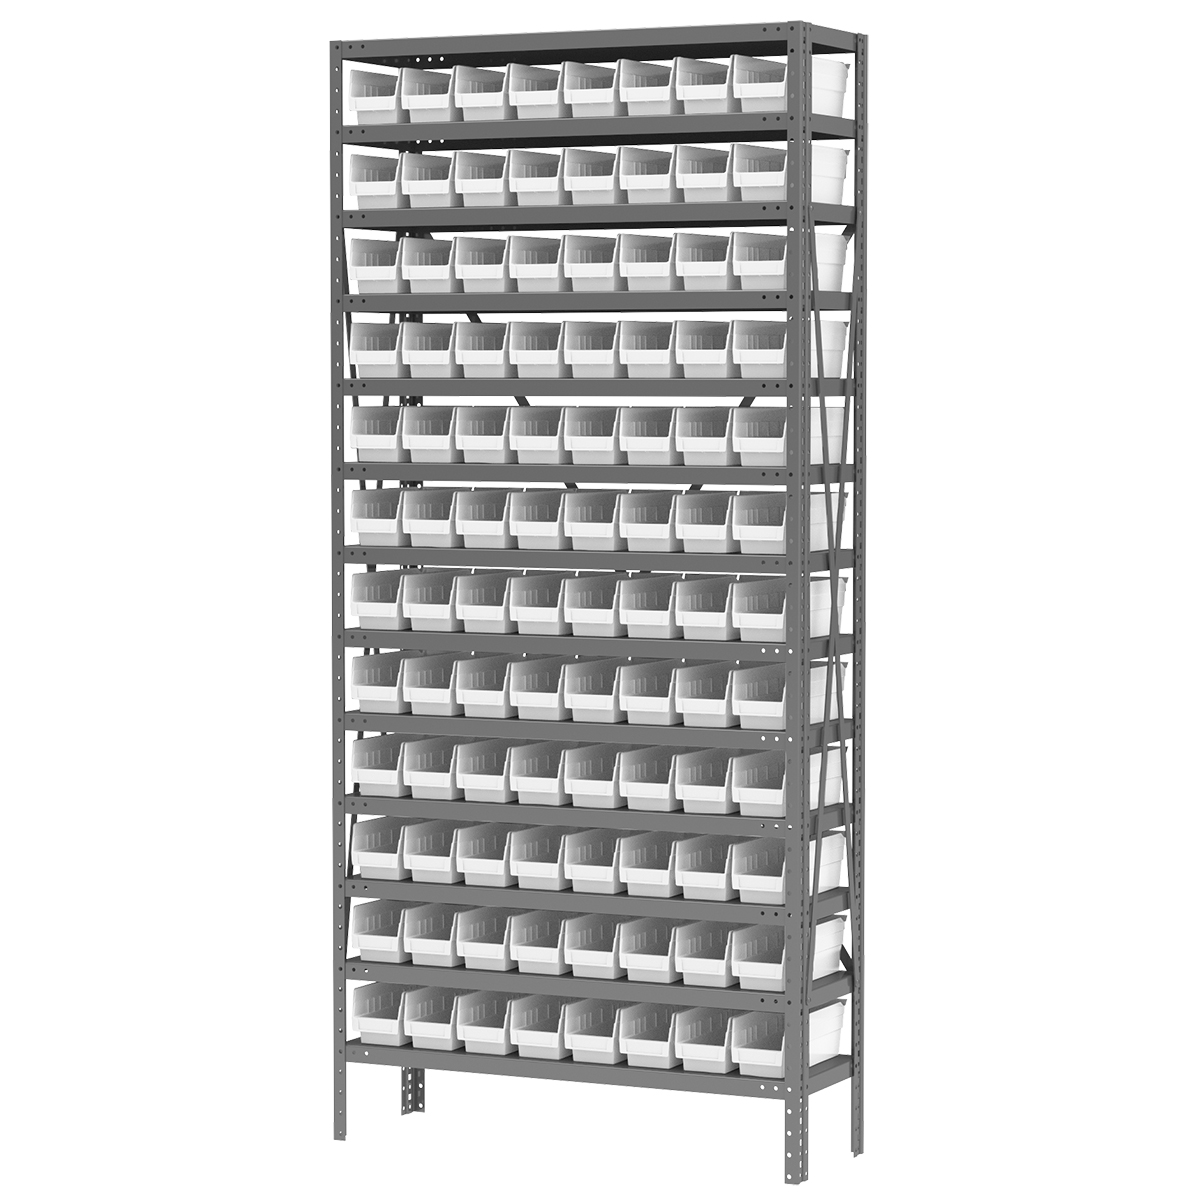 Steel Shelving Kit, 12x36x79, 96 Bins, Gray/White (AS1279120W).  This item sold in carton quantities of 1.